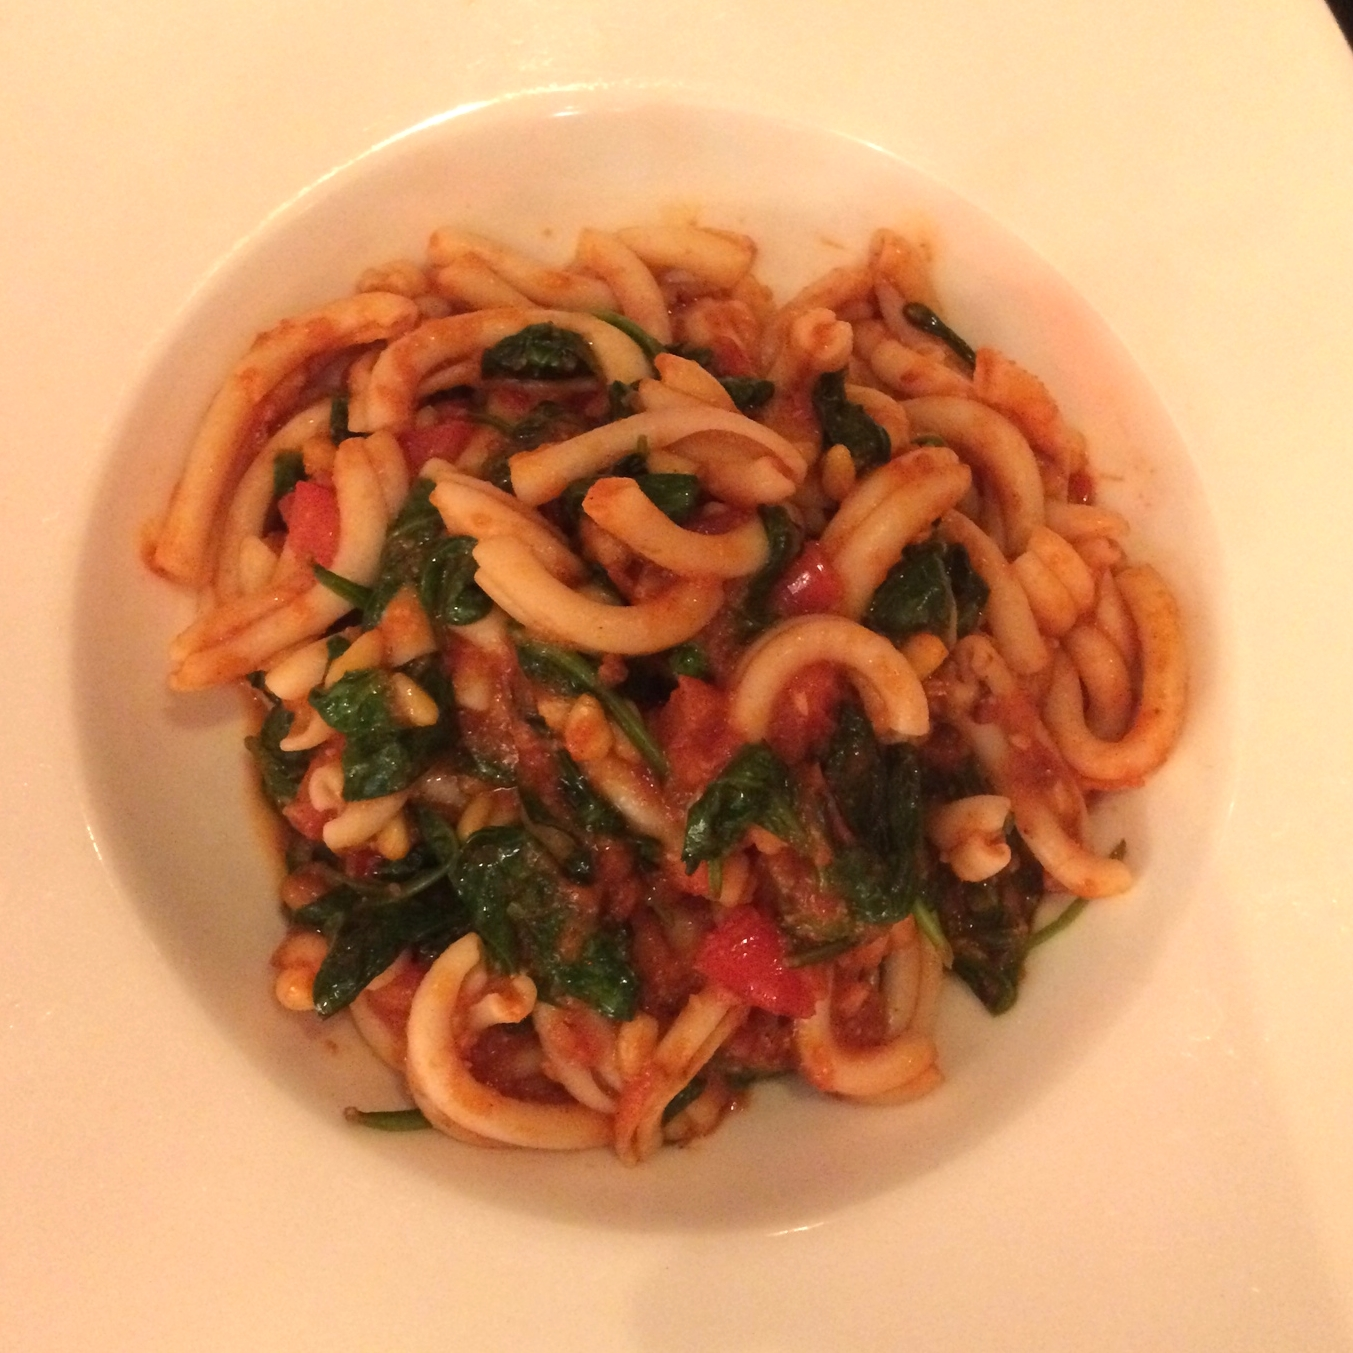 Fusilli with fresh Ricotta, Baby Spinach, Olives, Salsa Rossa and a hint of Chili.